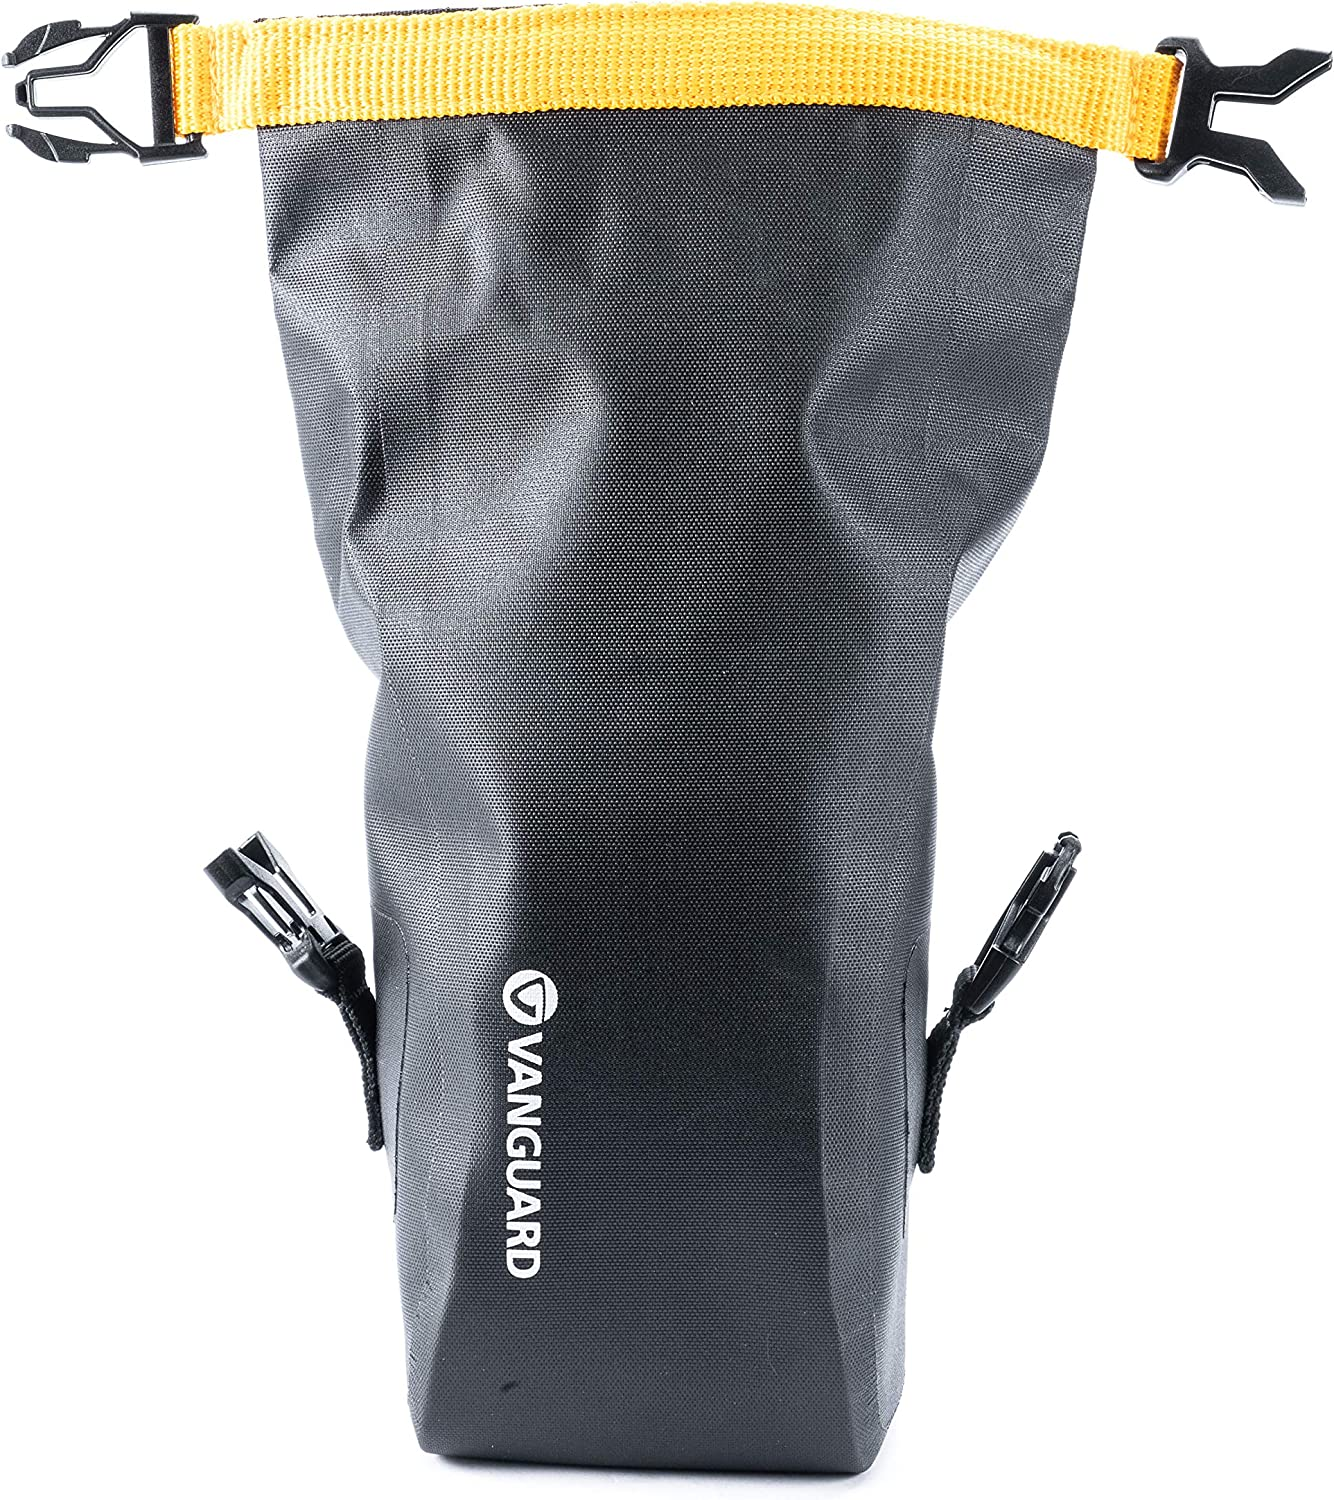 Vanguard Alta Waterproof Pouch Large